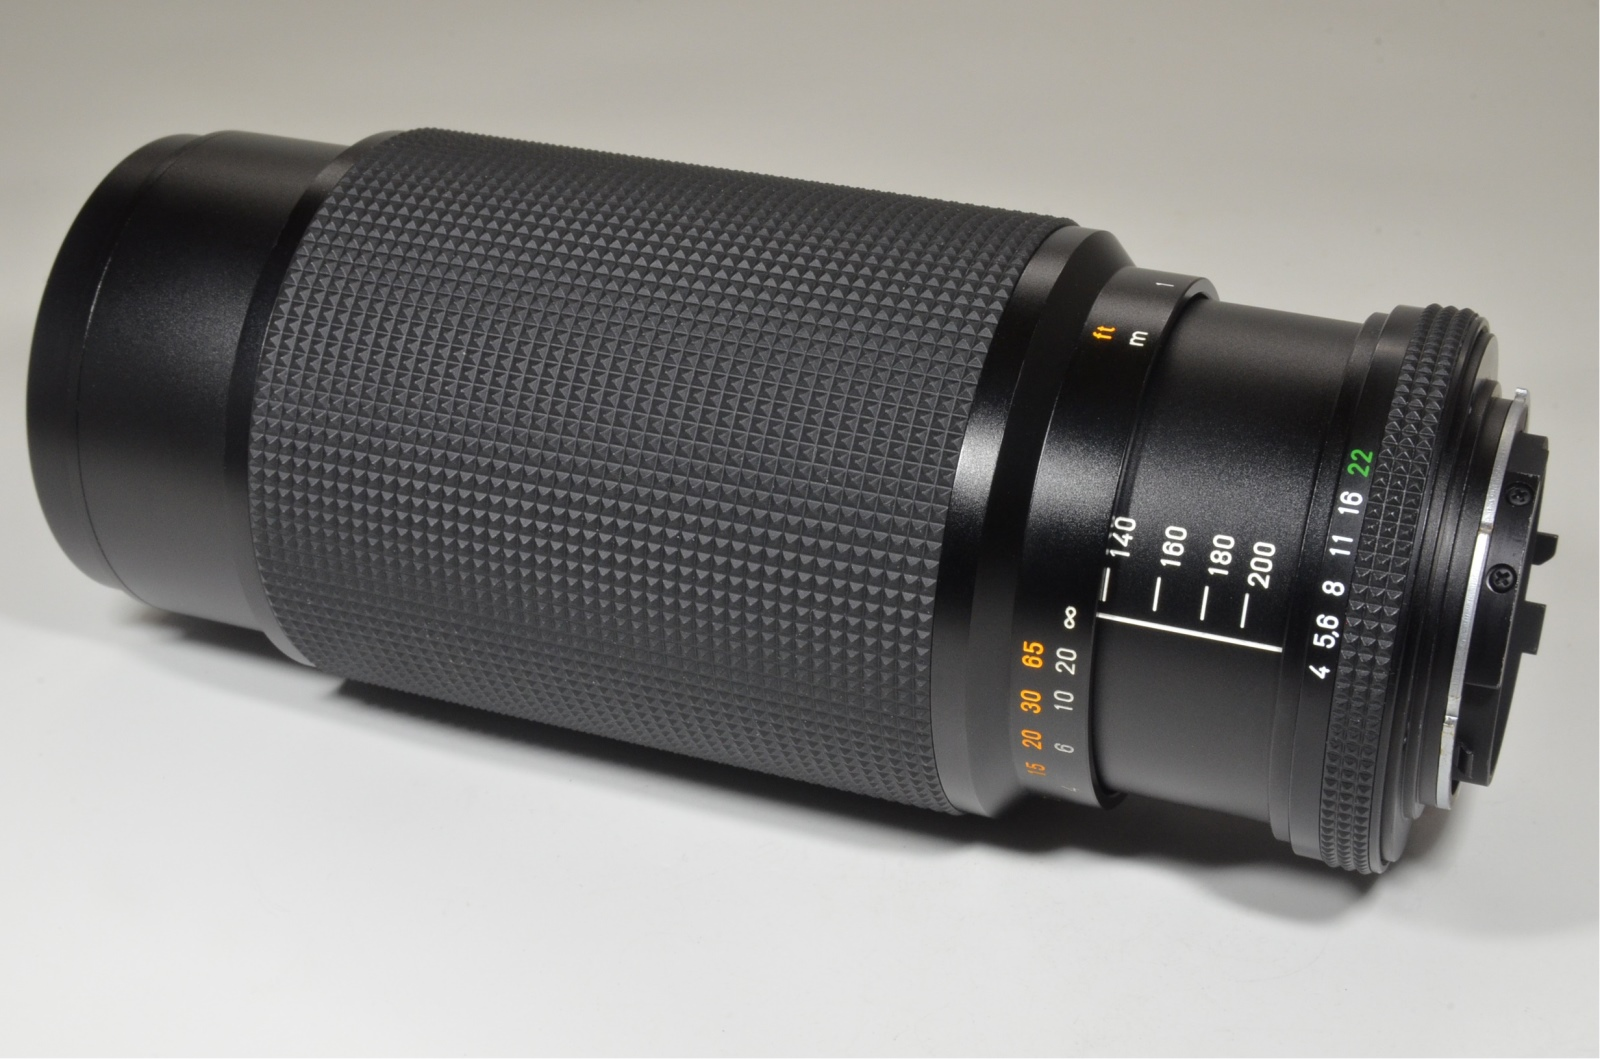 contax carl zeiss t* vario-sonnar 80-200mm f4 mmj with between rings 13,20,27mm